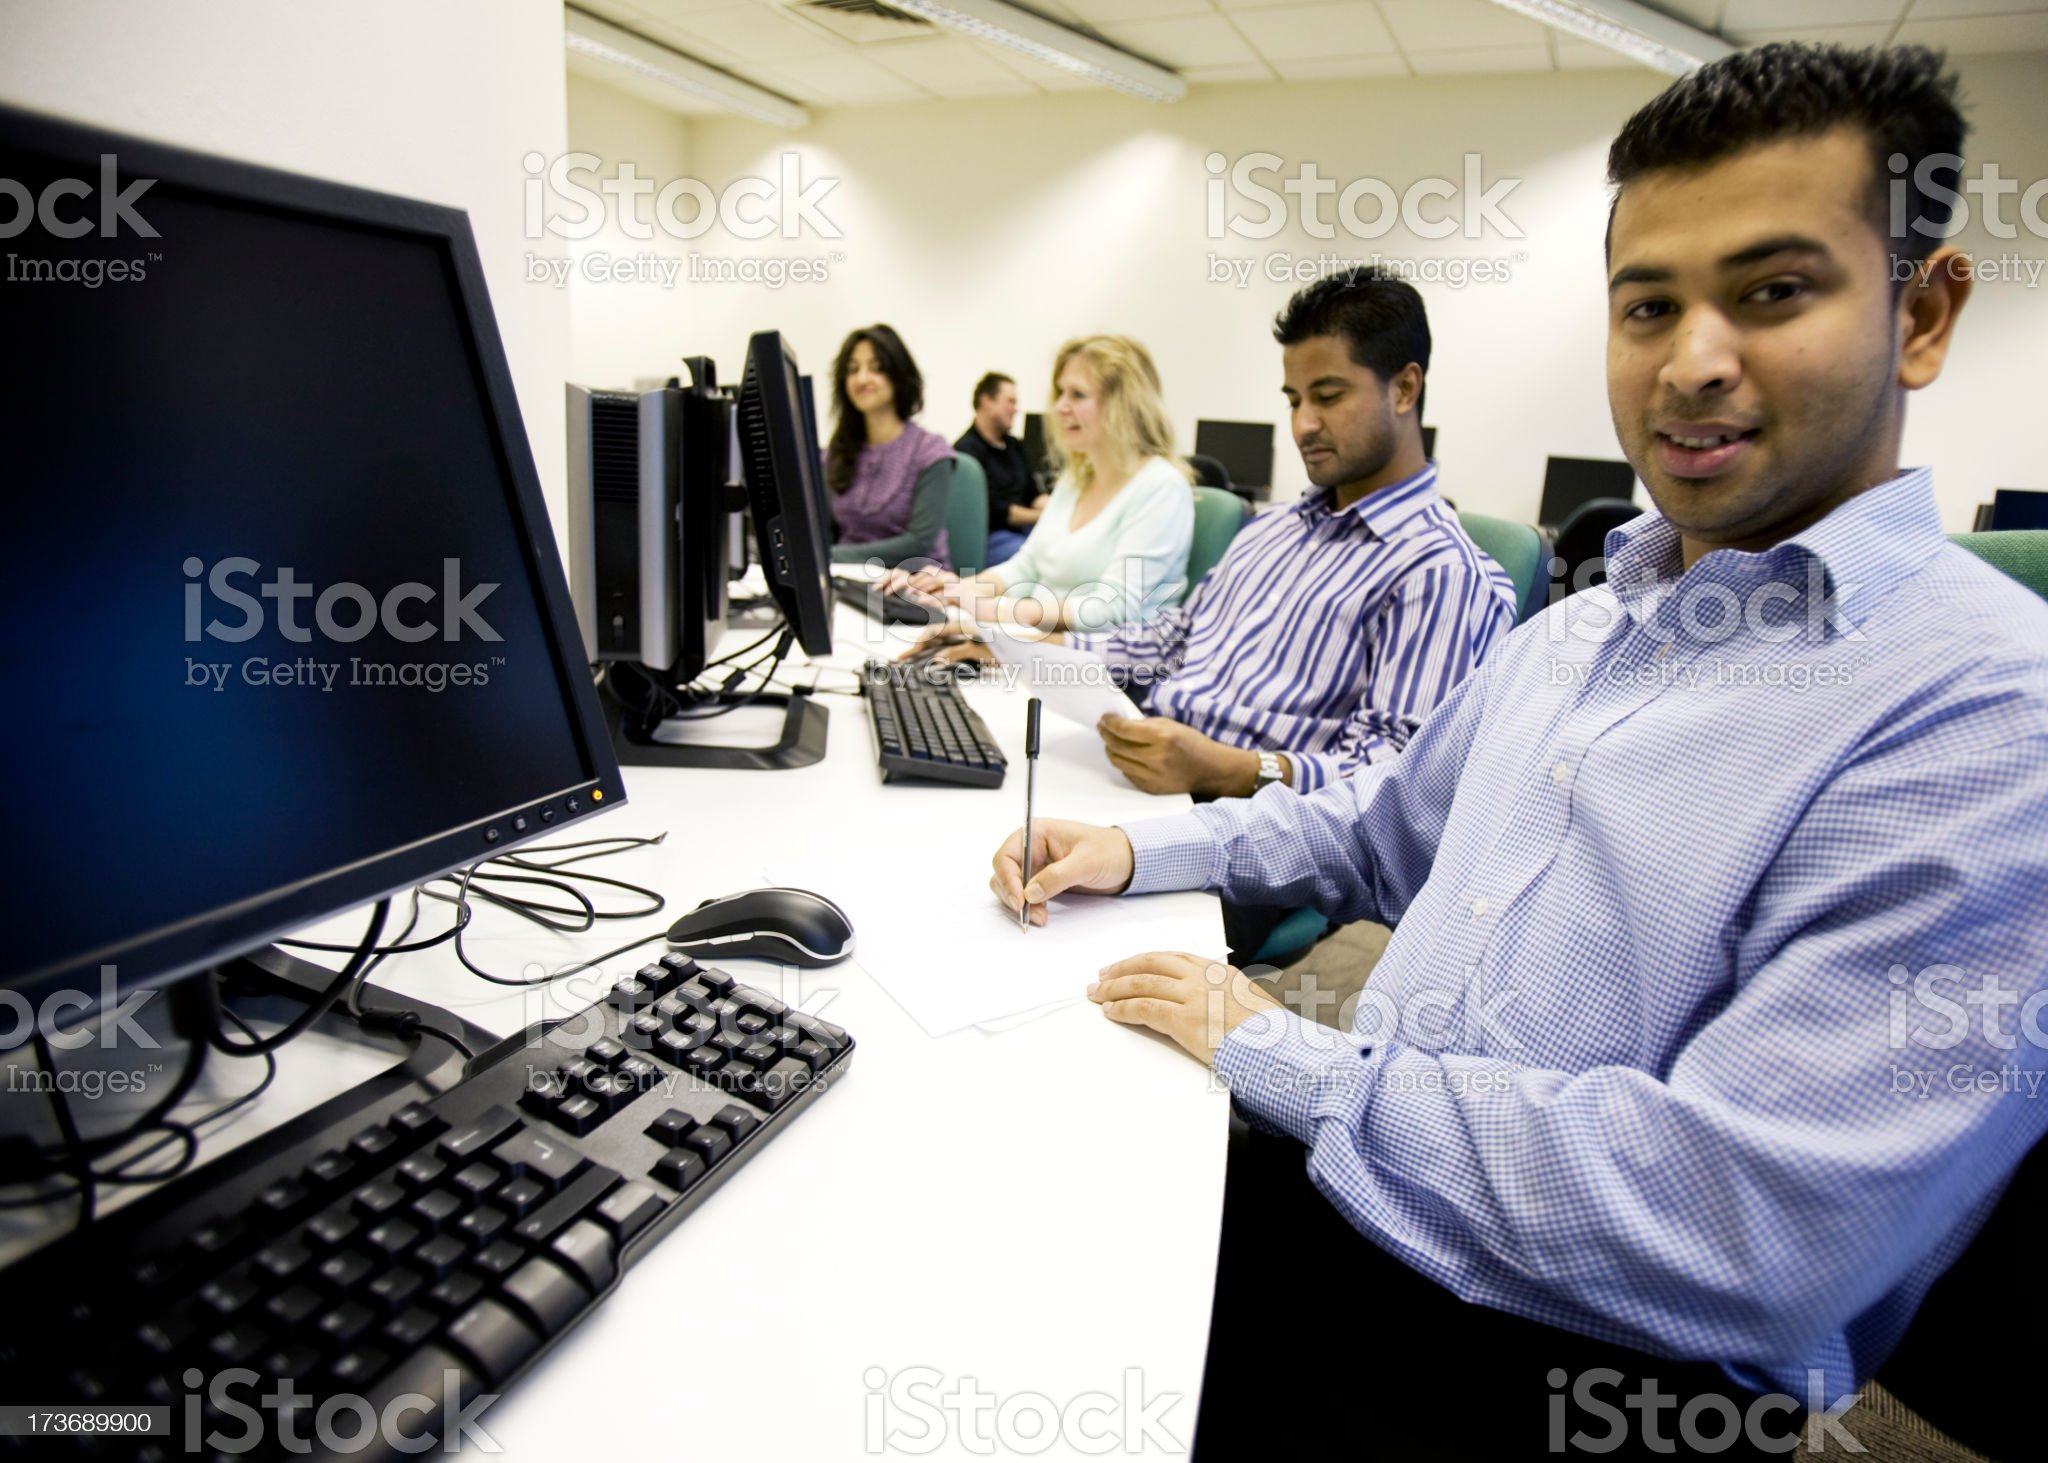 adult education: computer workers royalty-free stock photo